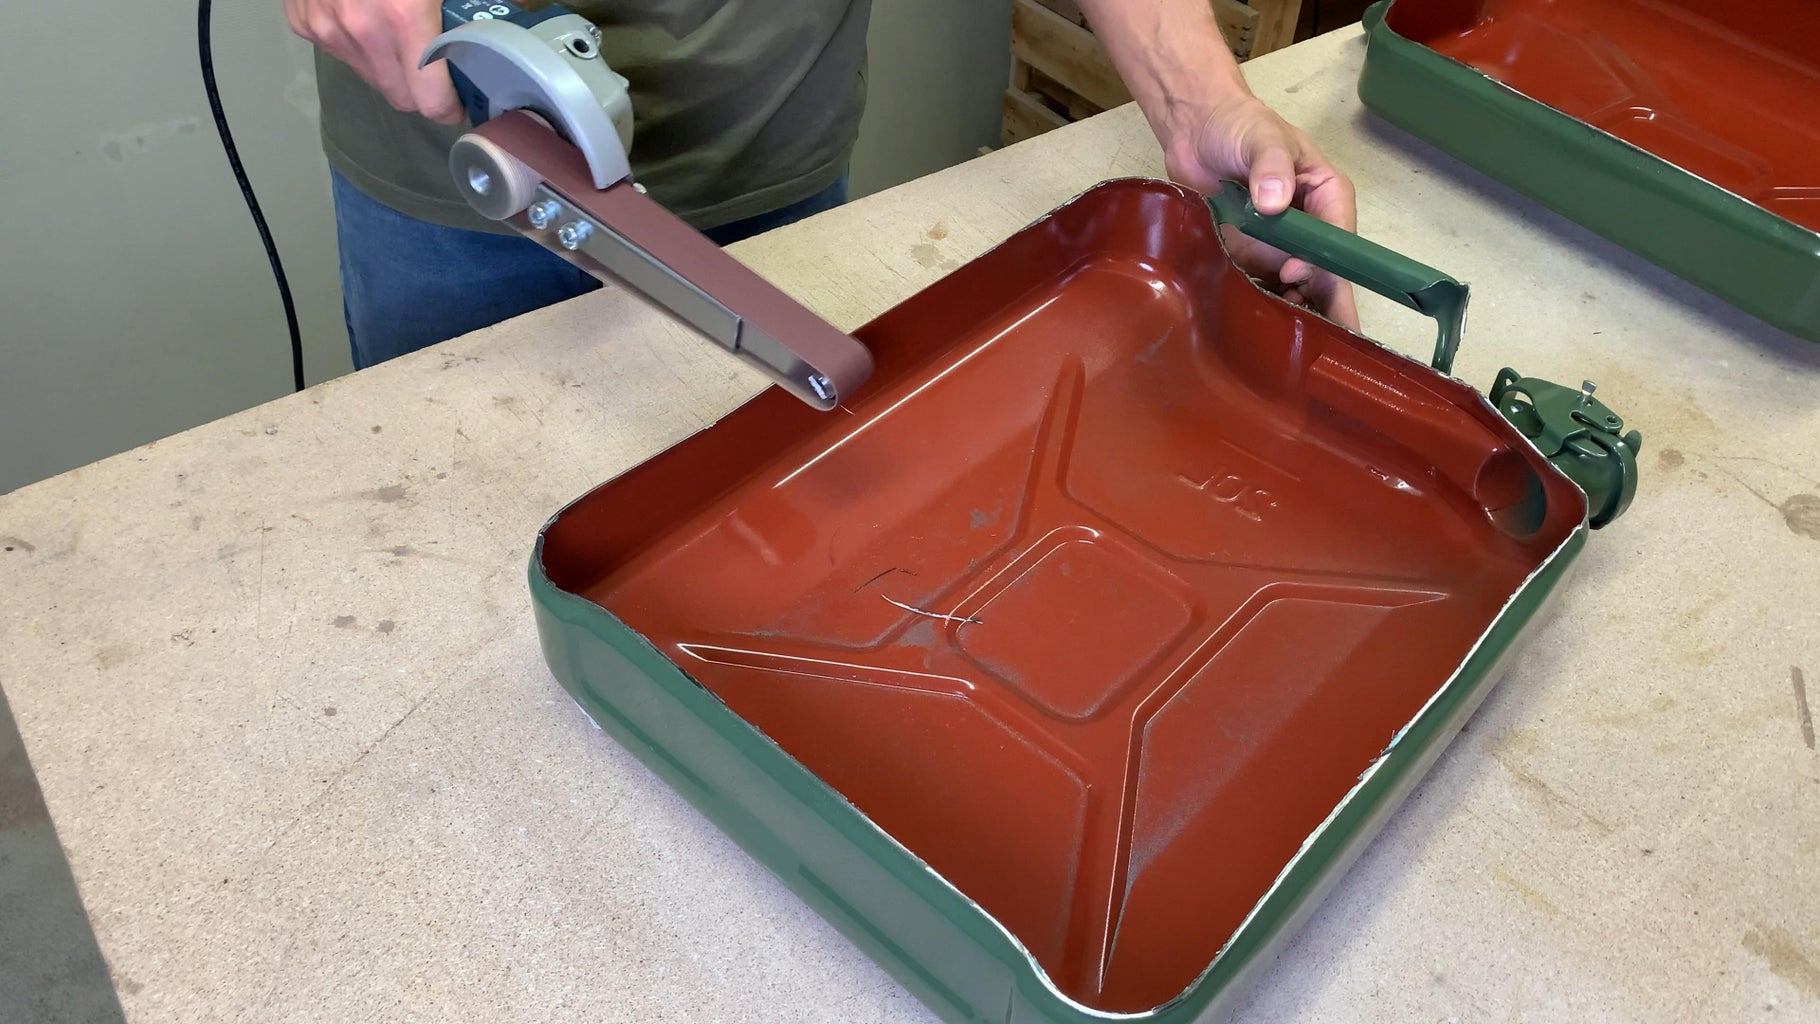 Cleaning All Sharp Edges